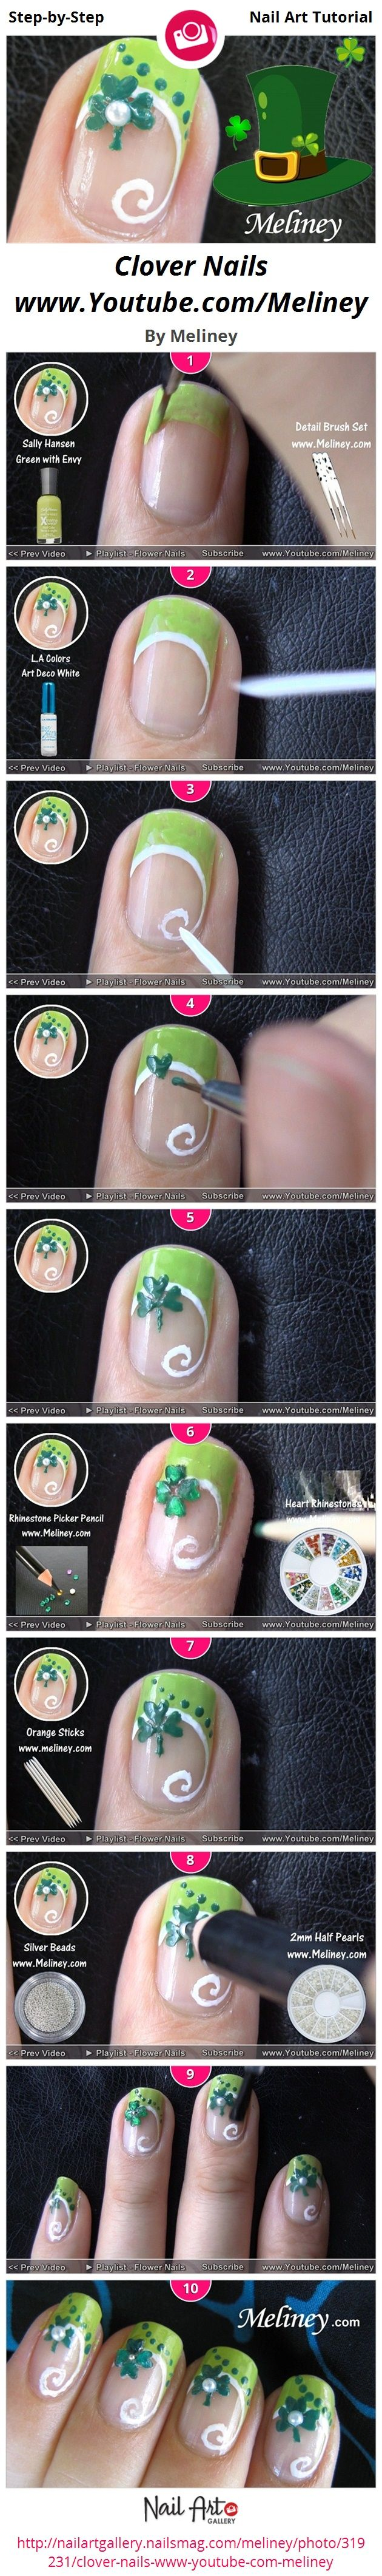 Best 25 youtube nail art ideas on pinterest nail tutorials diy clover nails youtubemeliney by meliney nail art gallery step prinsesfo Gallery